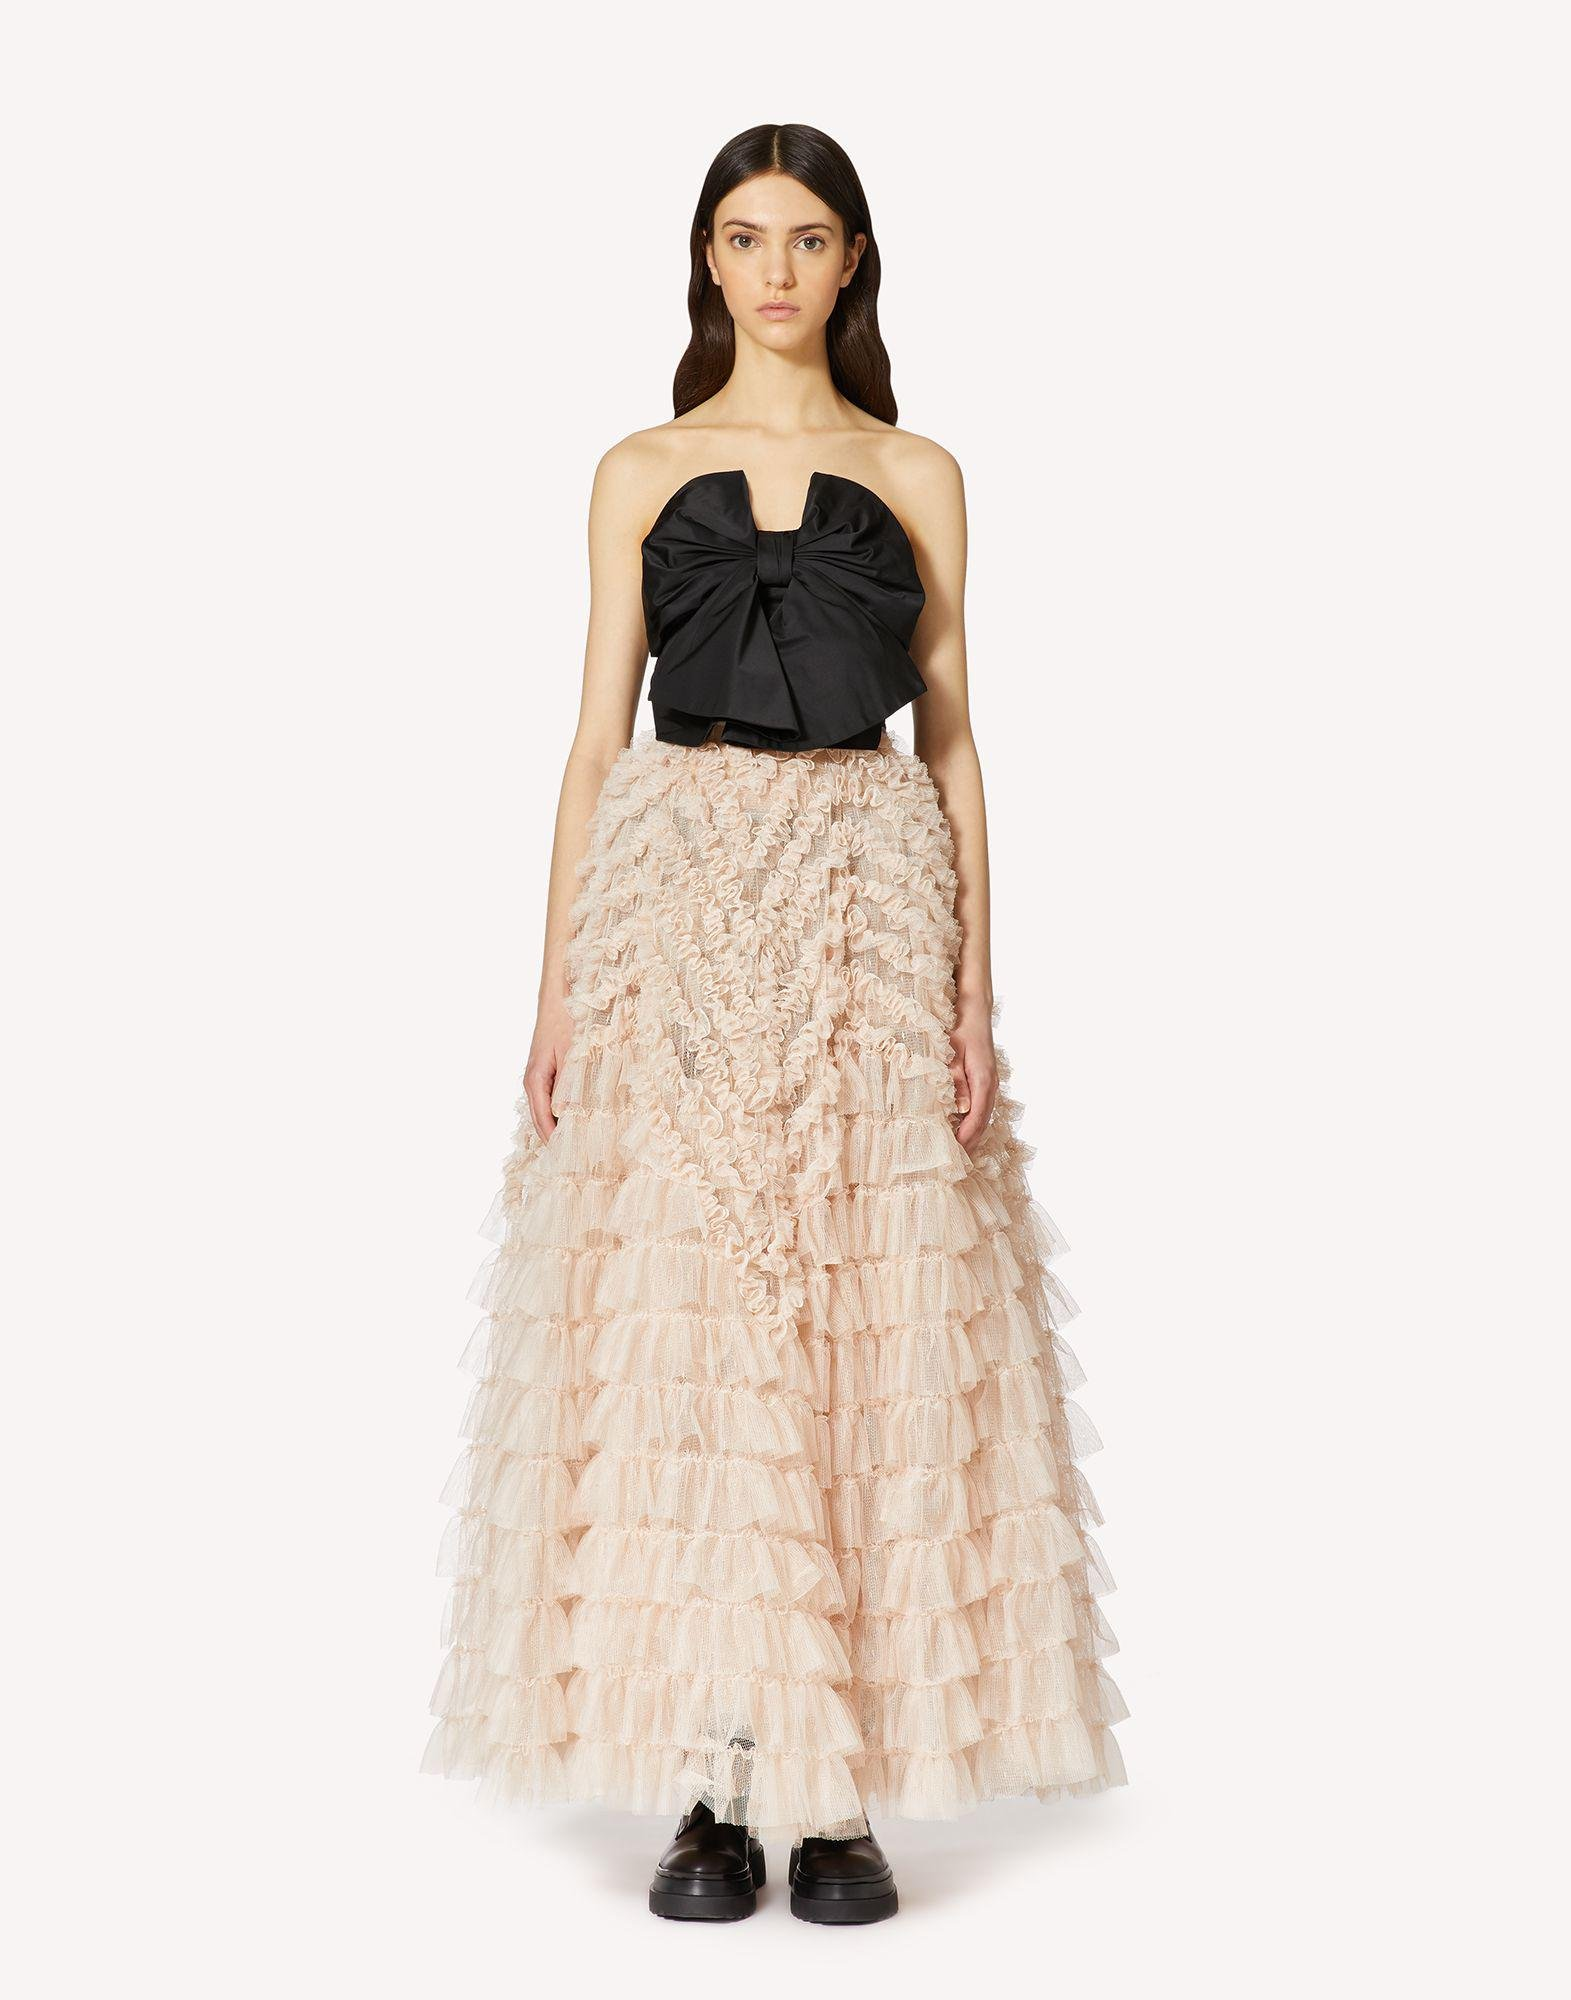 TULLE AND TAFFETA SPECIAL DRESS WITH BOW DETAIL